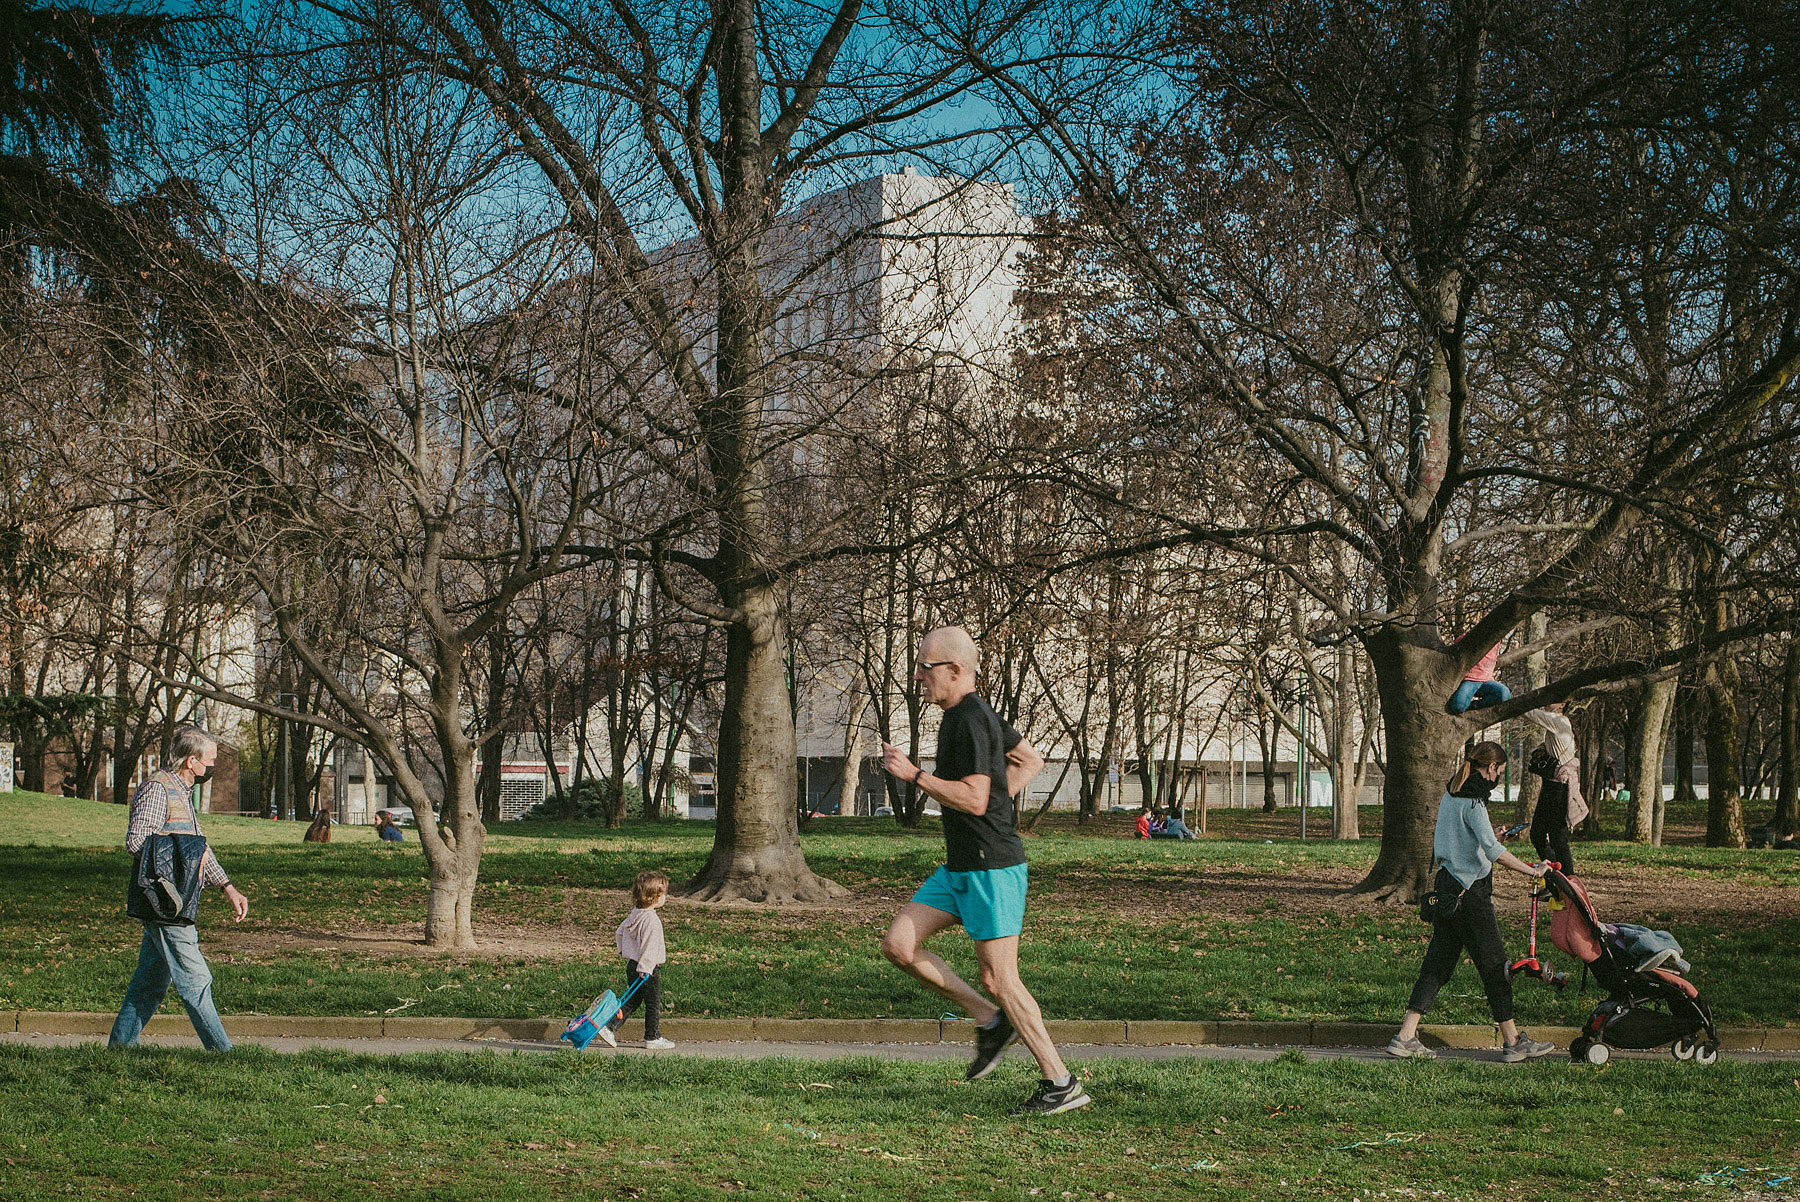 A man running in Vittorio Formentano park in Milan, while some persons walk by